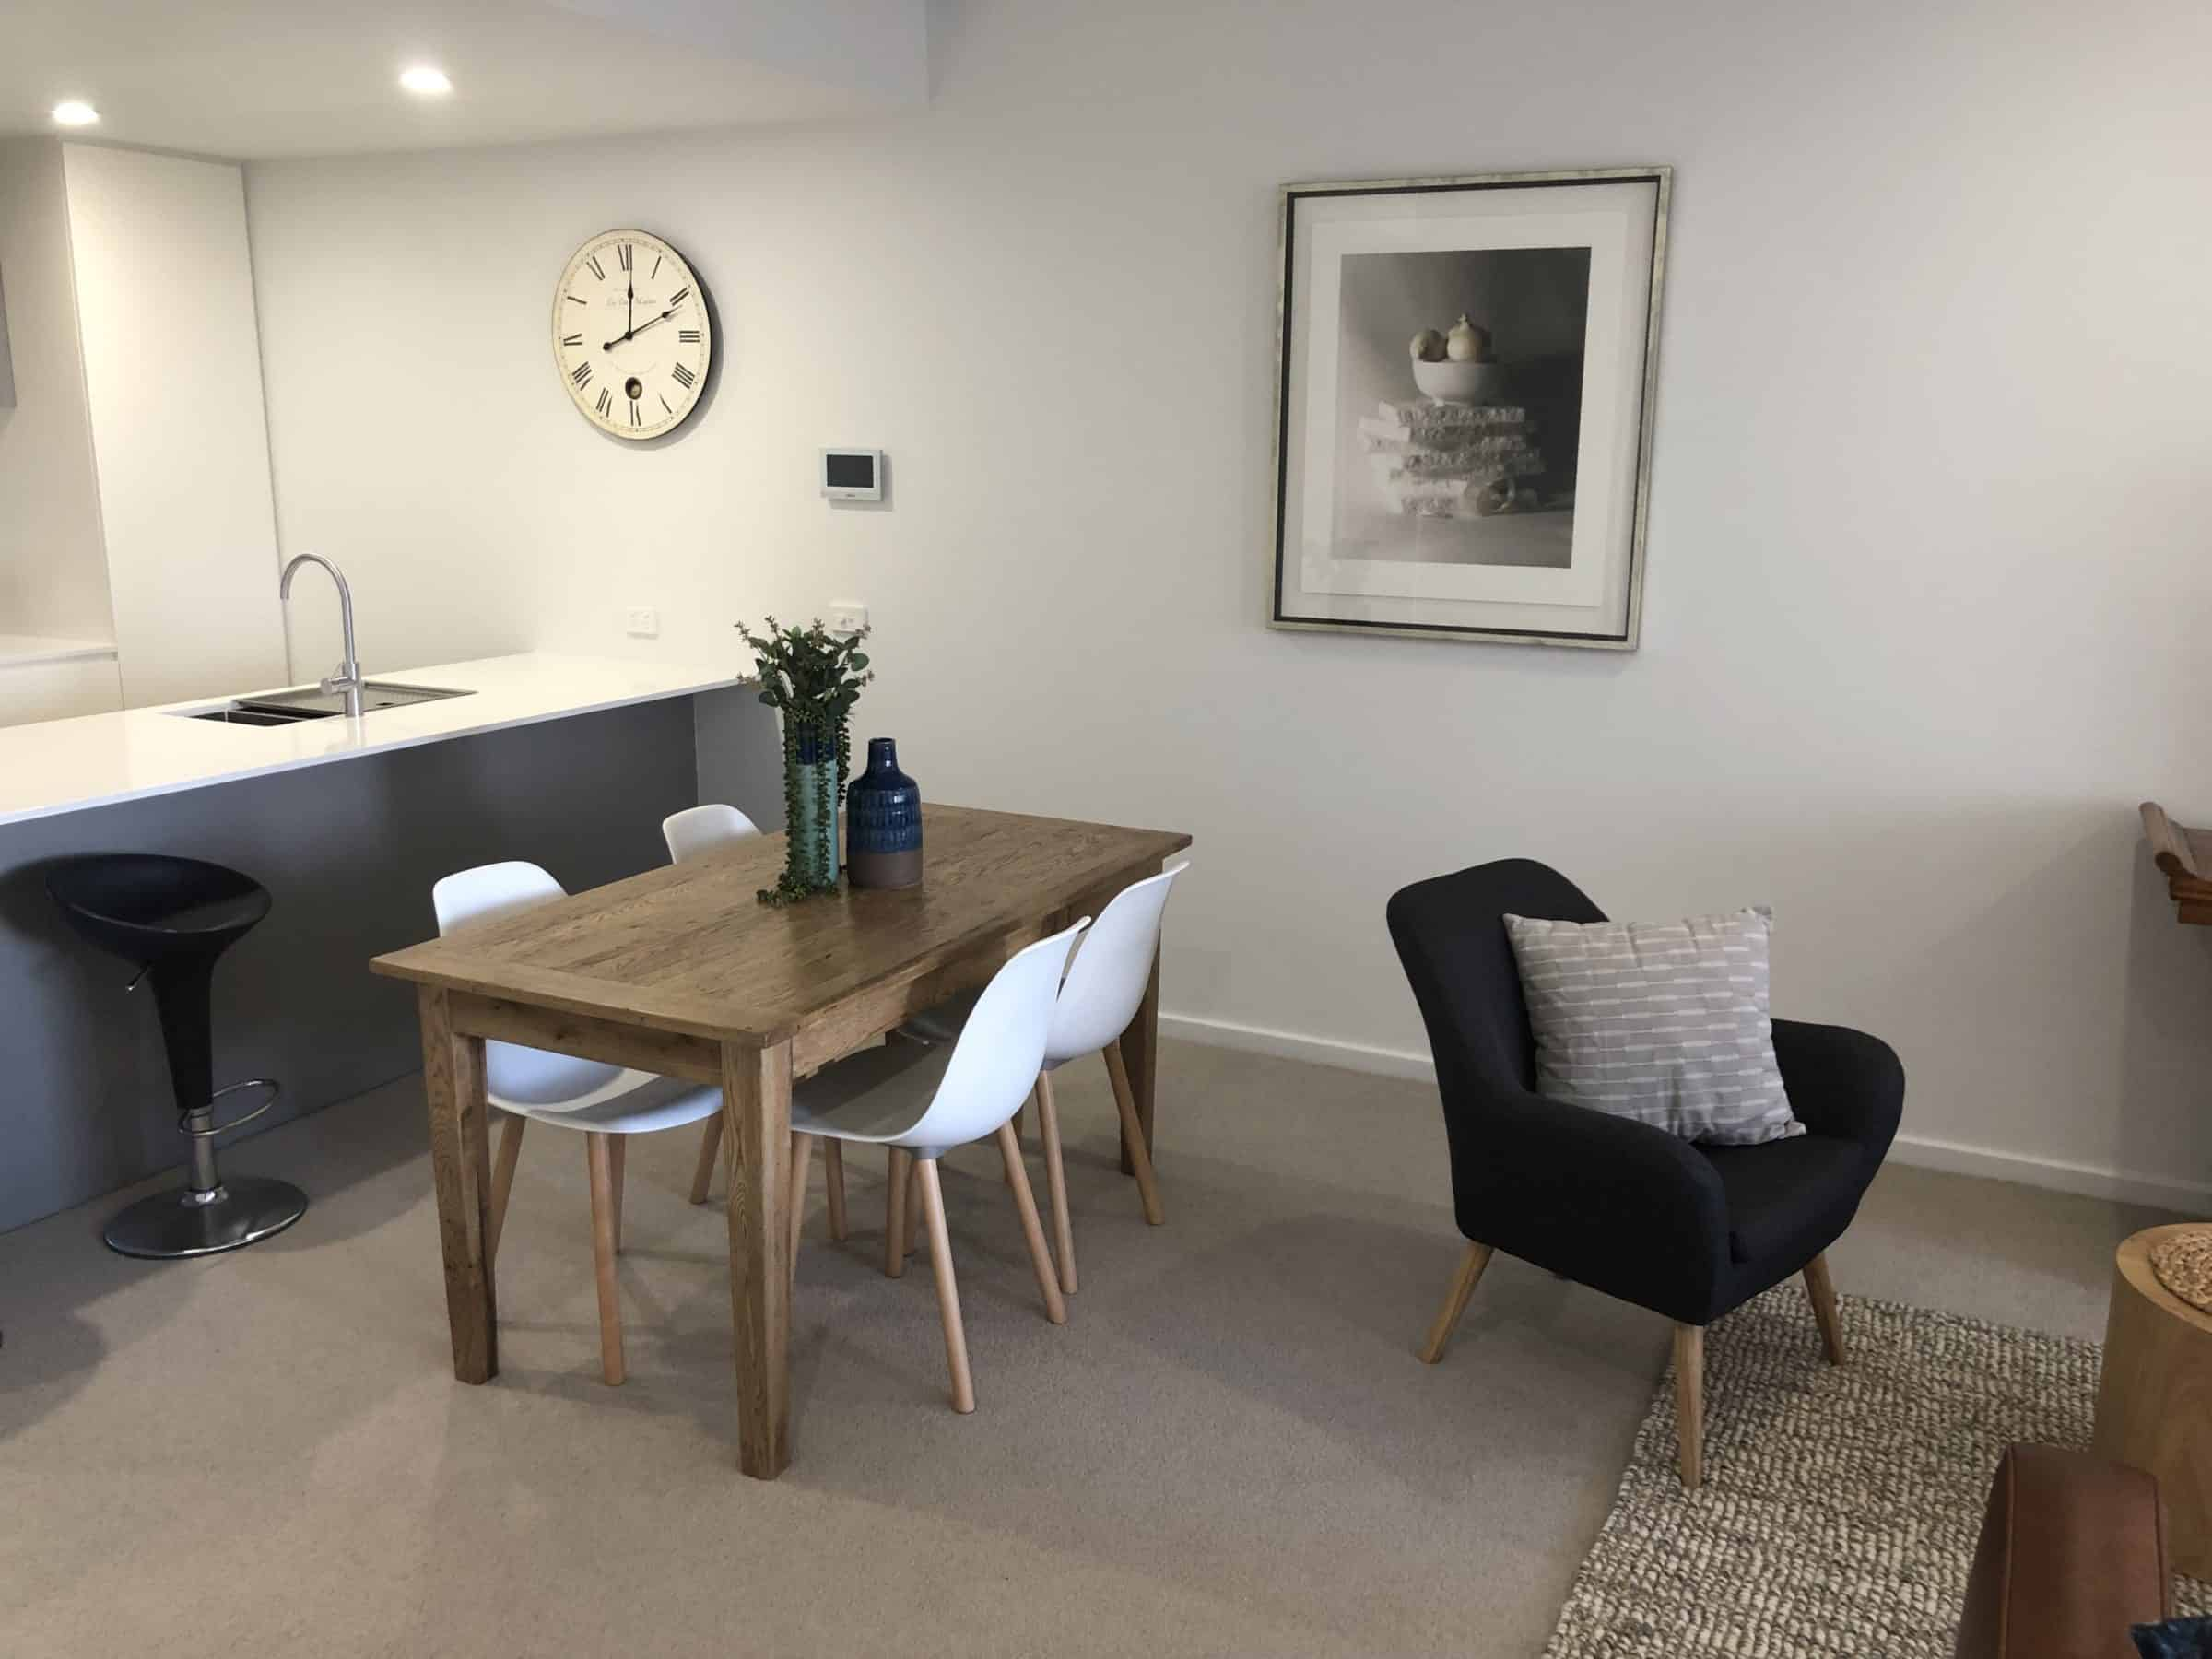 Herald Apartments - https://www.newcastleapartments.com.au/wp-content/uploads/2019/12/Table-scaled.jpg